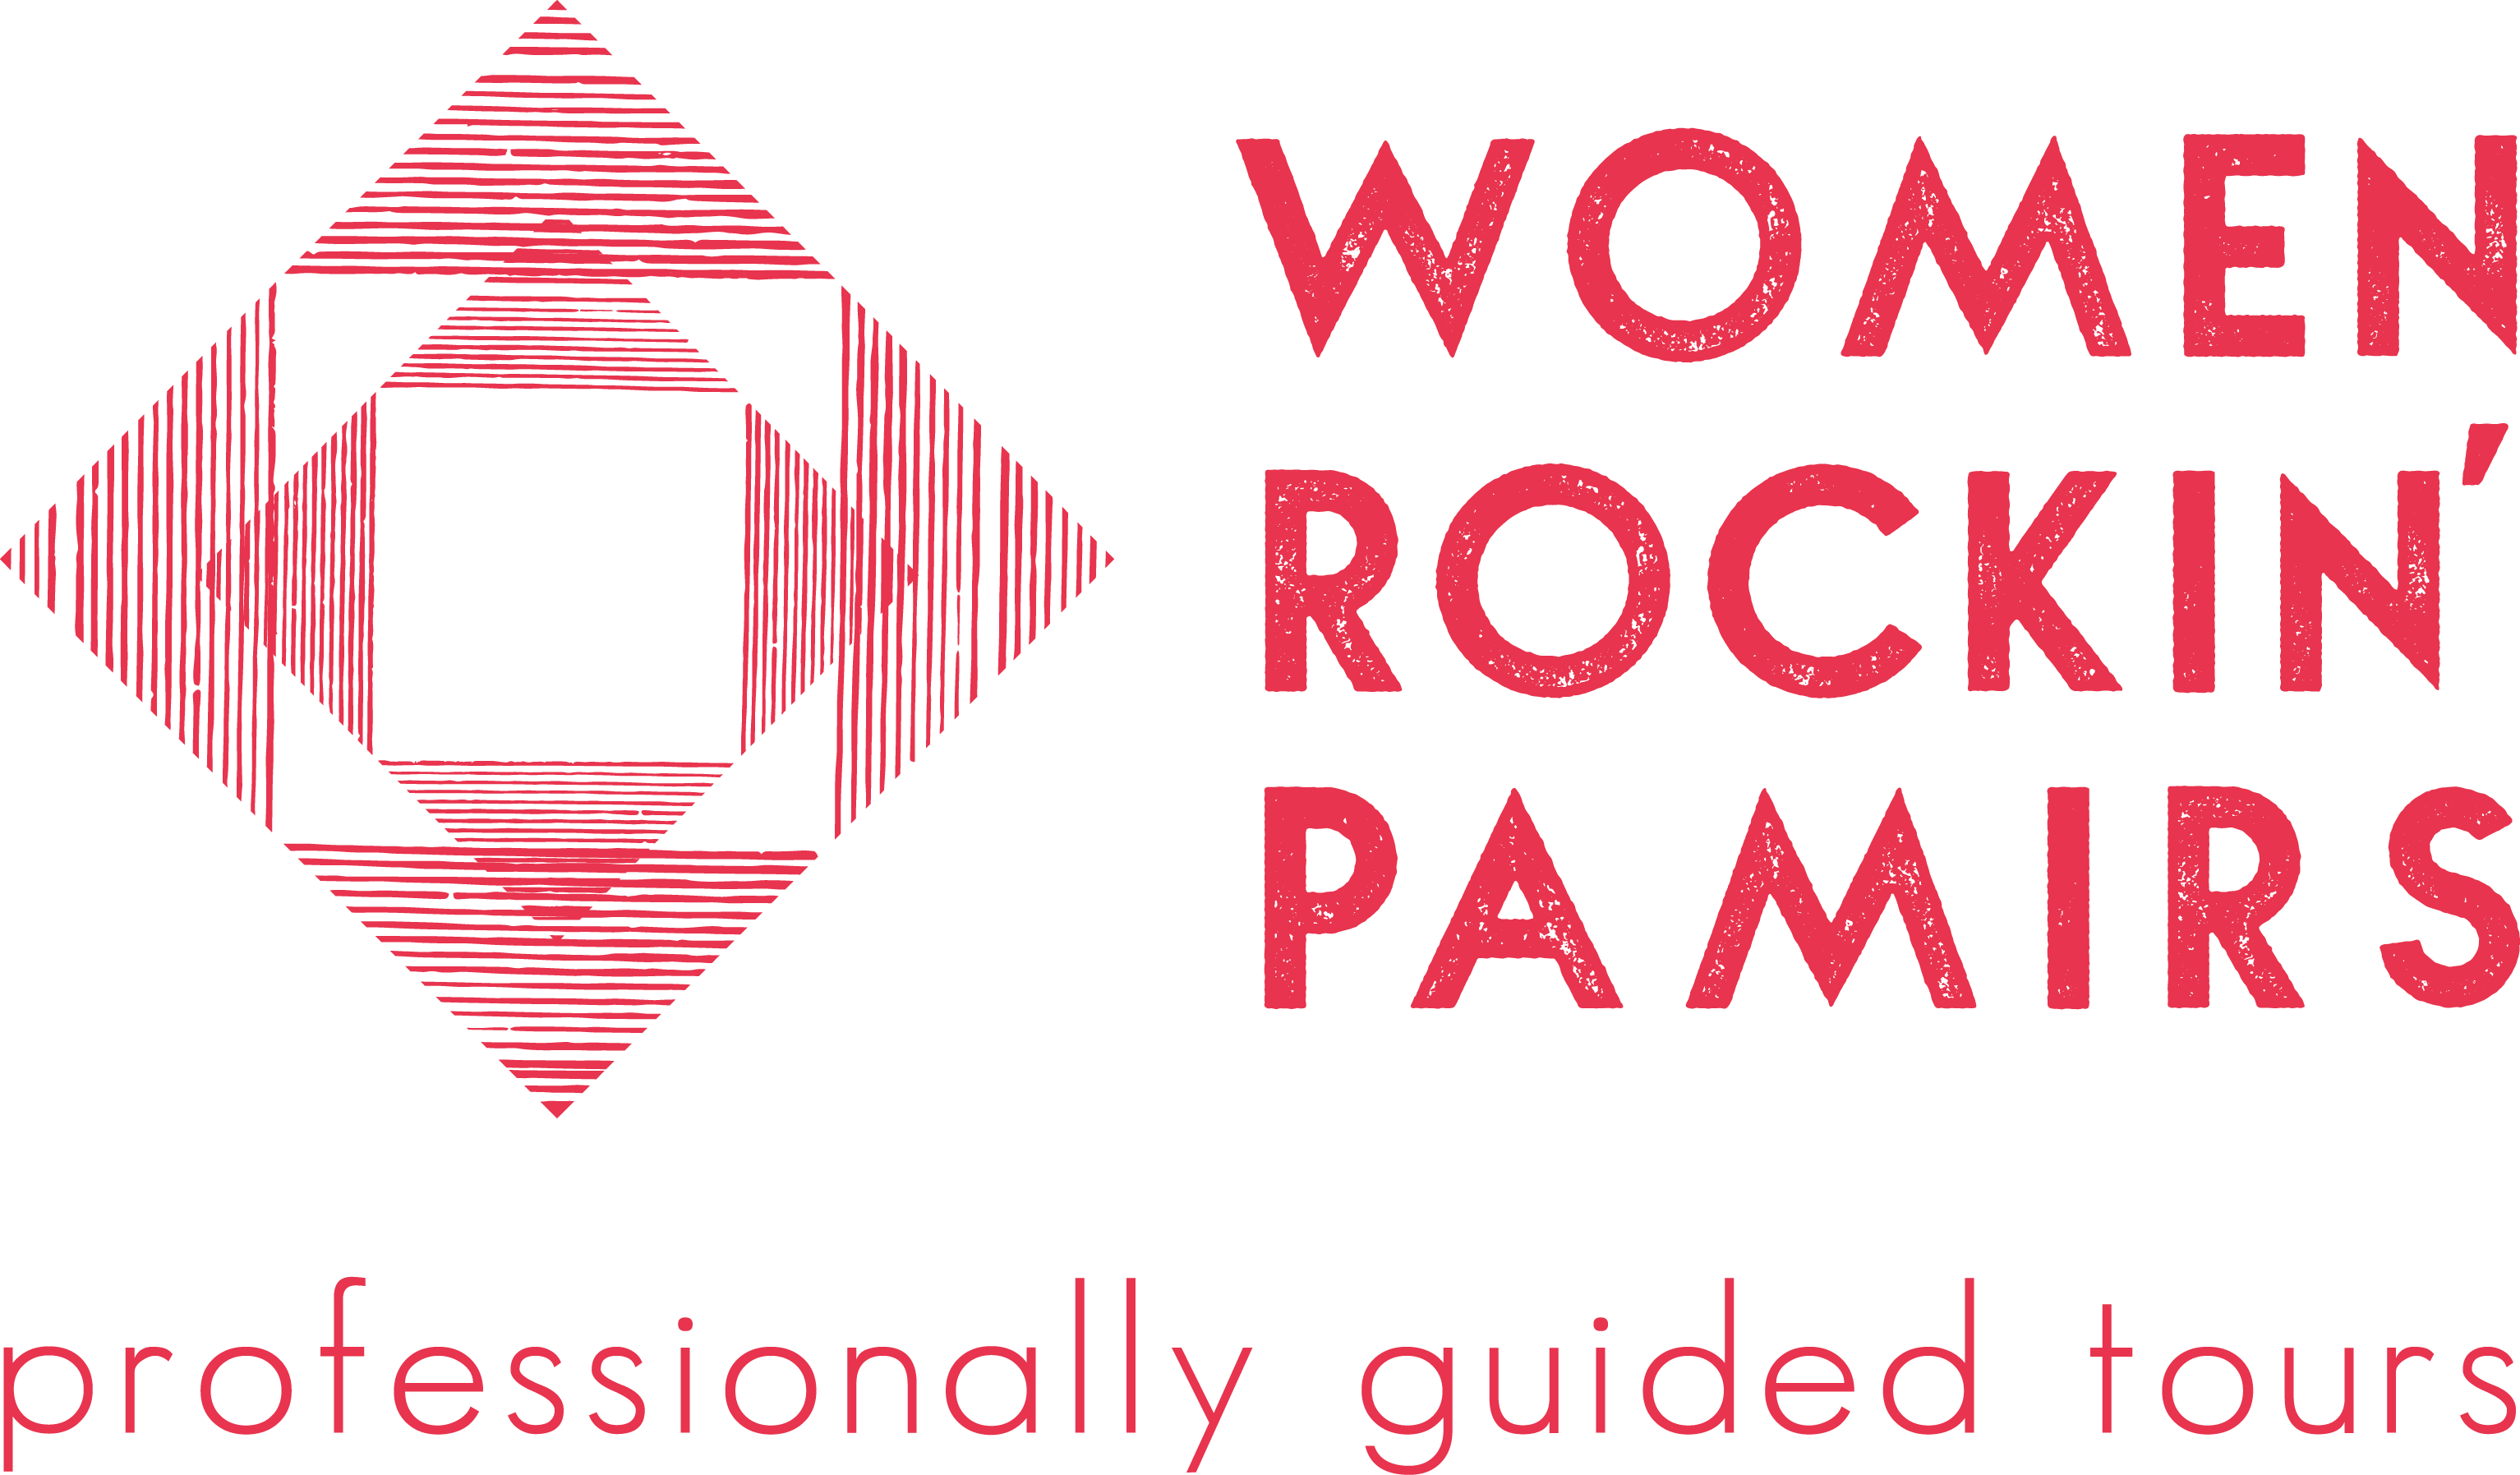 Association - Women rockin' Pamirs